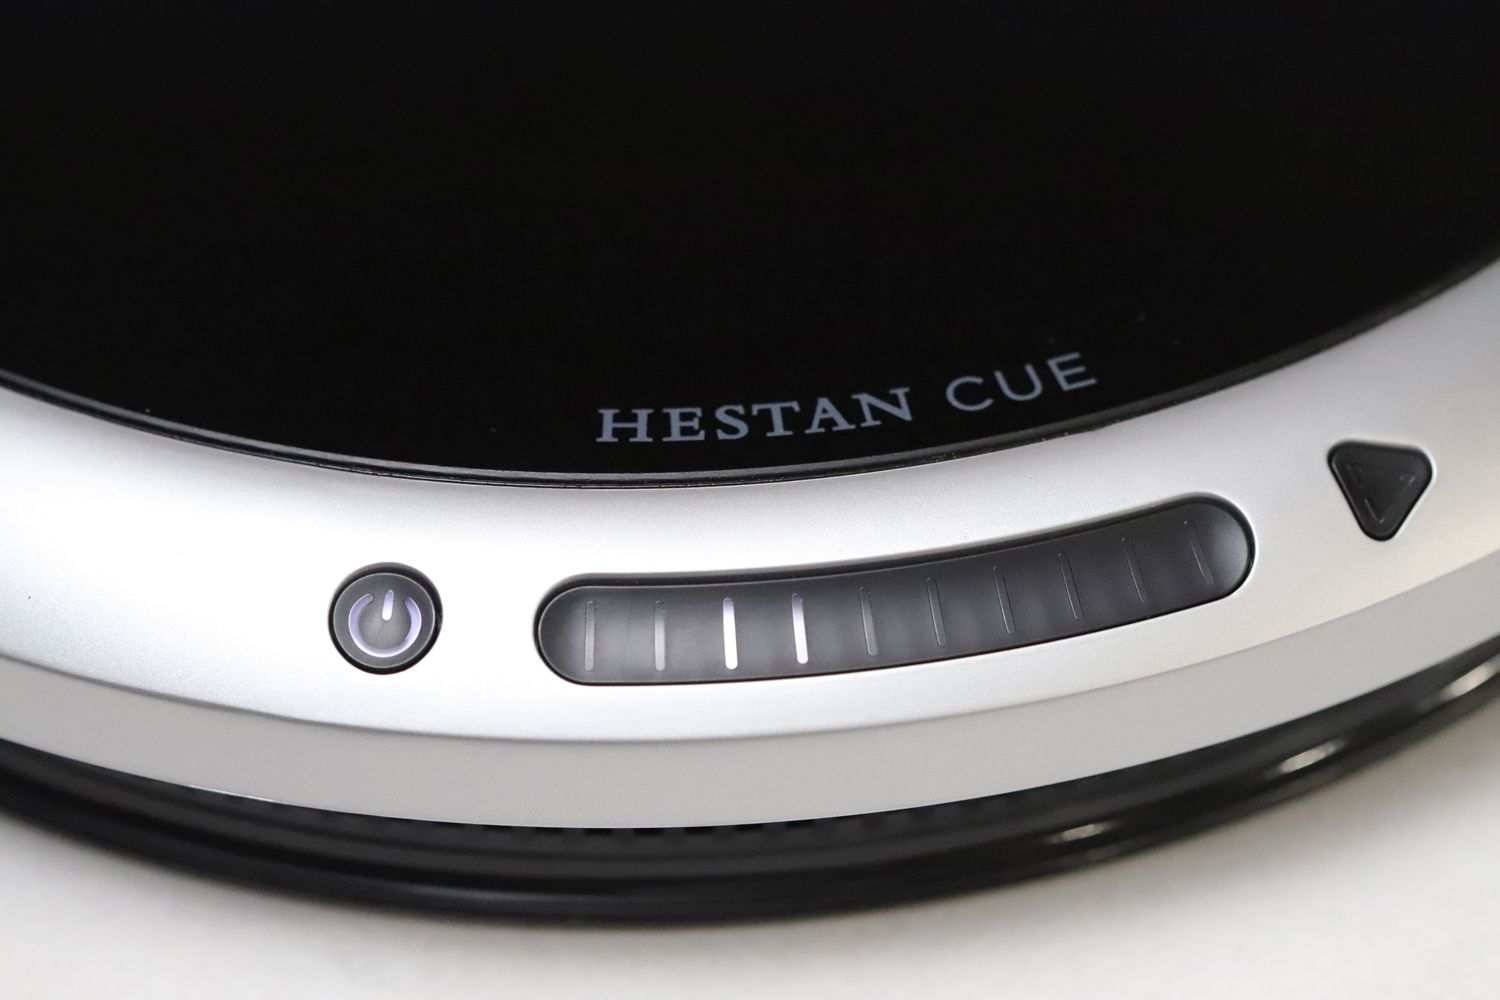 hestan-cue-smart-cooking-system-buttons